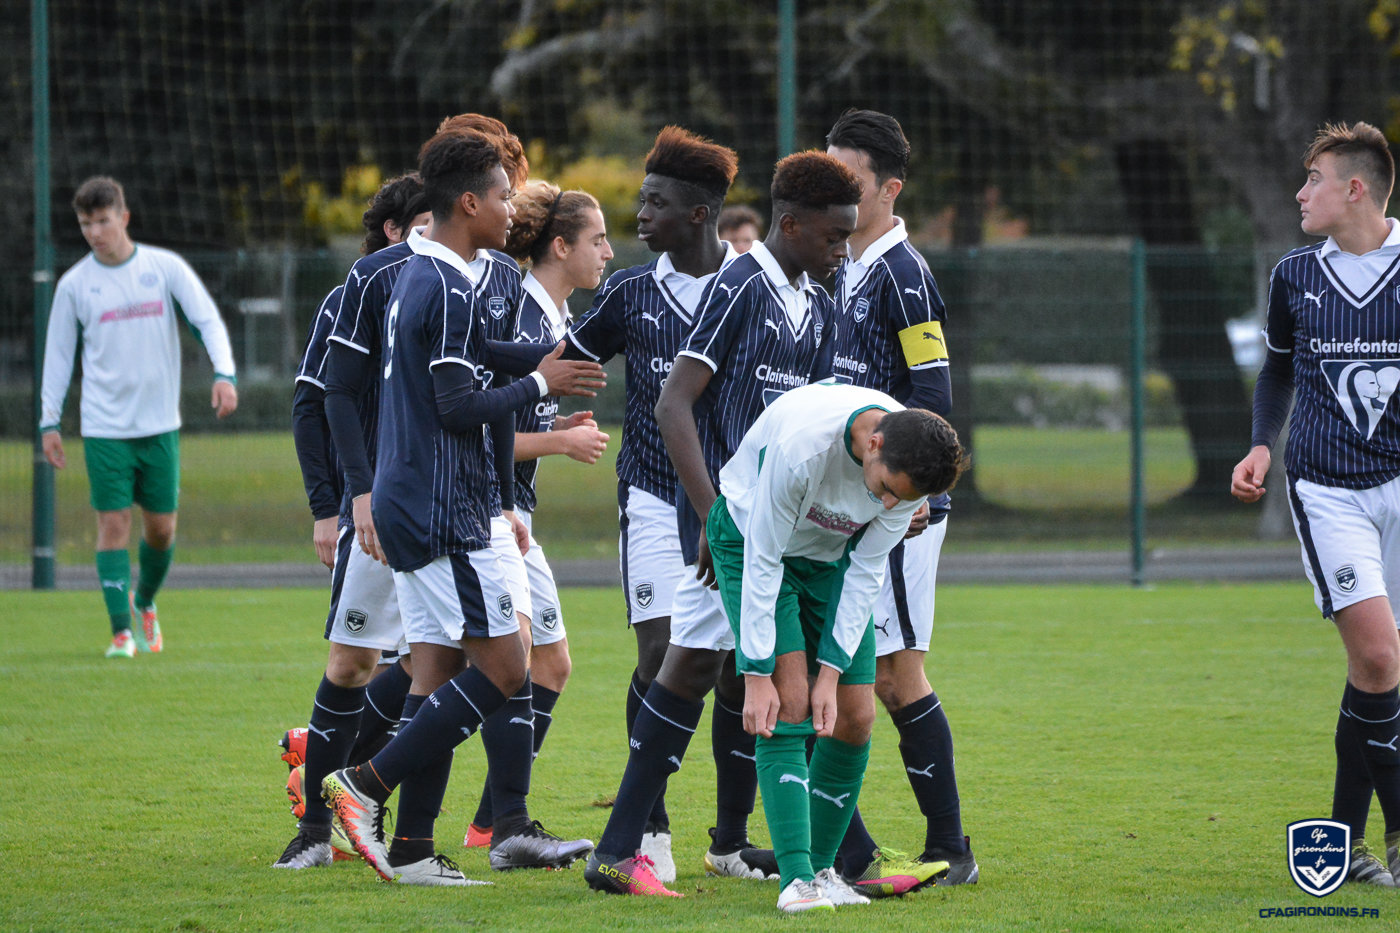 Bordeaux champion d'Aquitaine U17 !